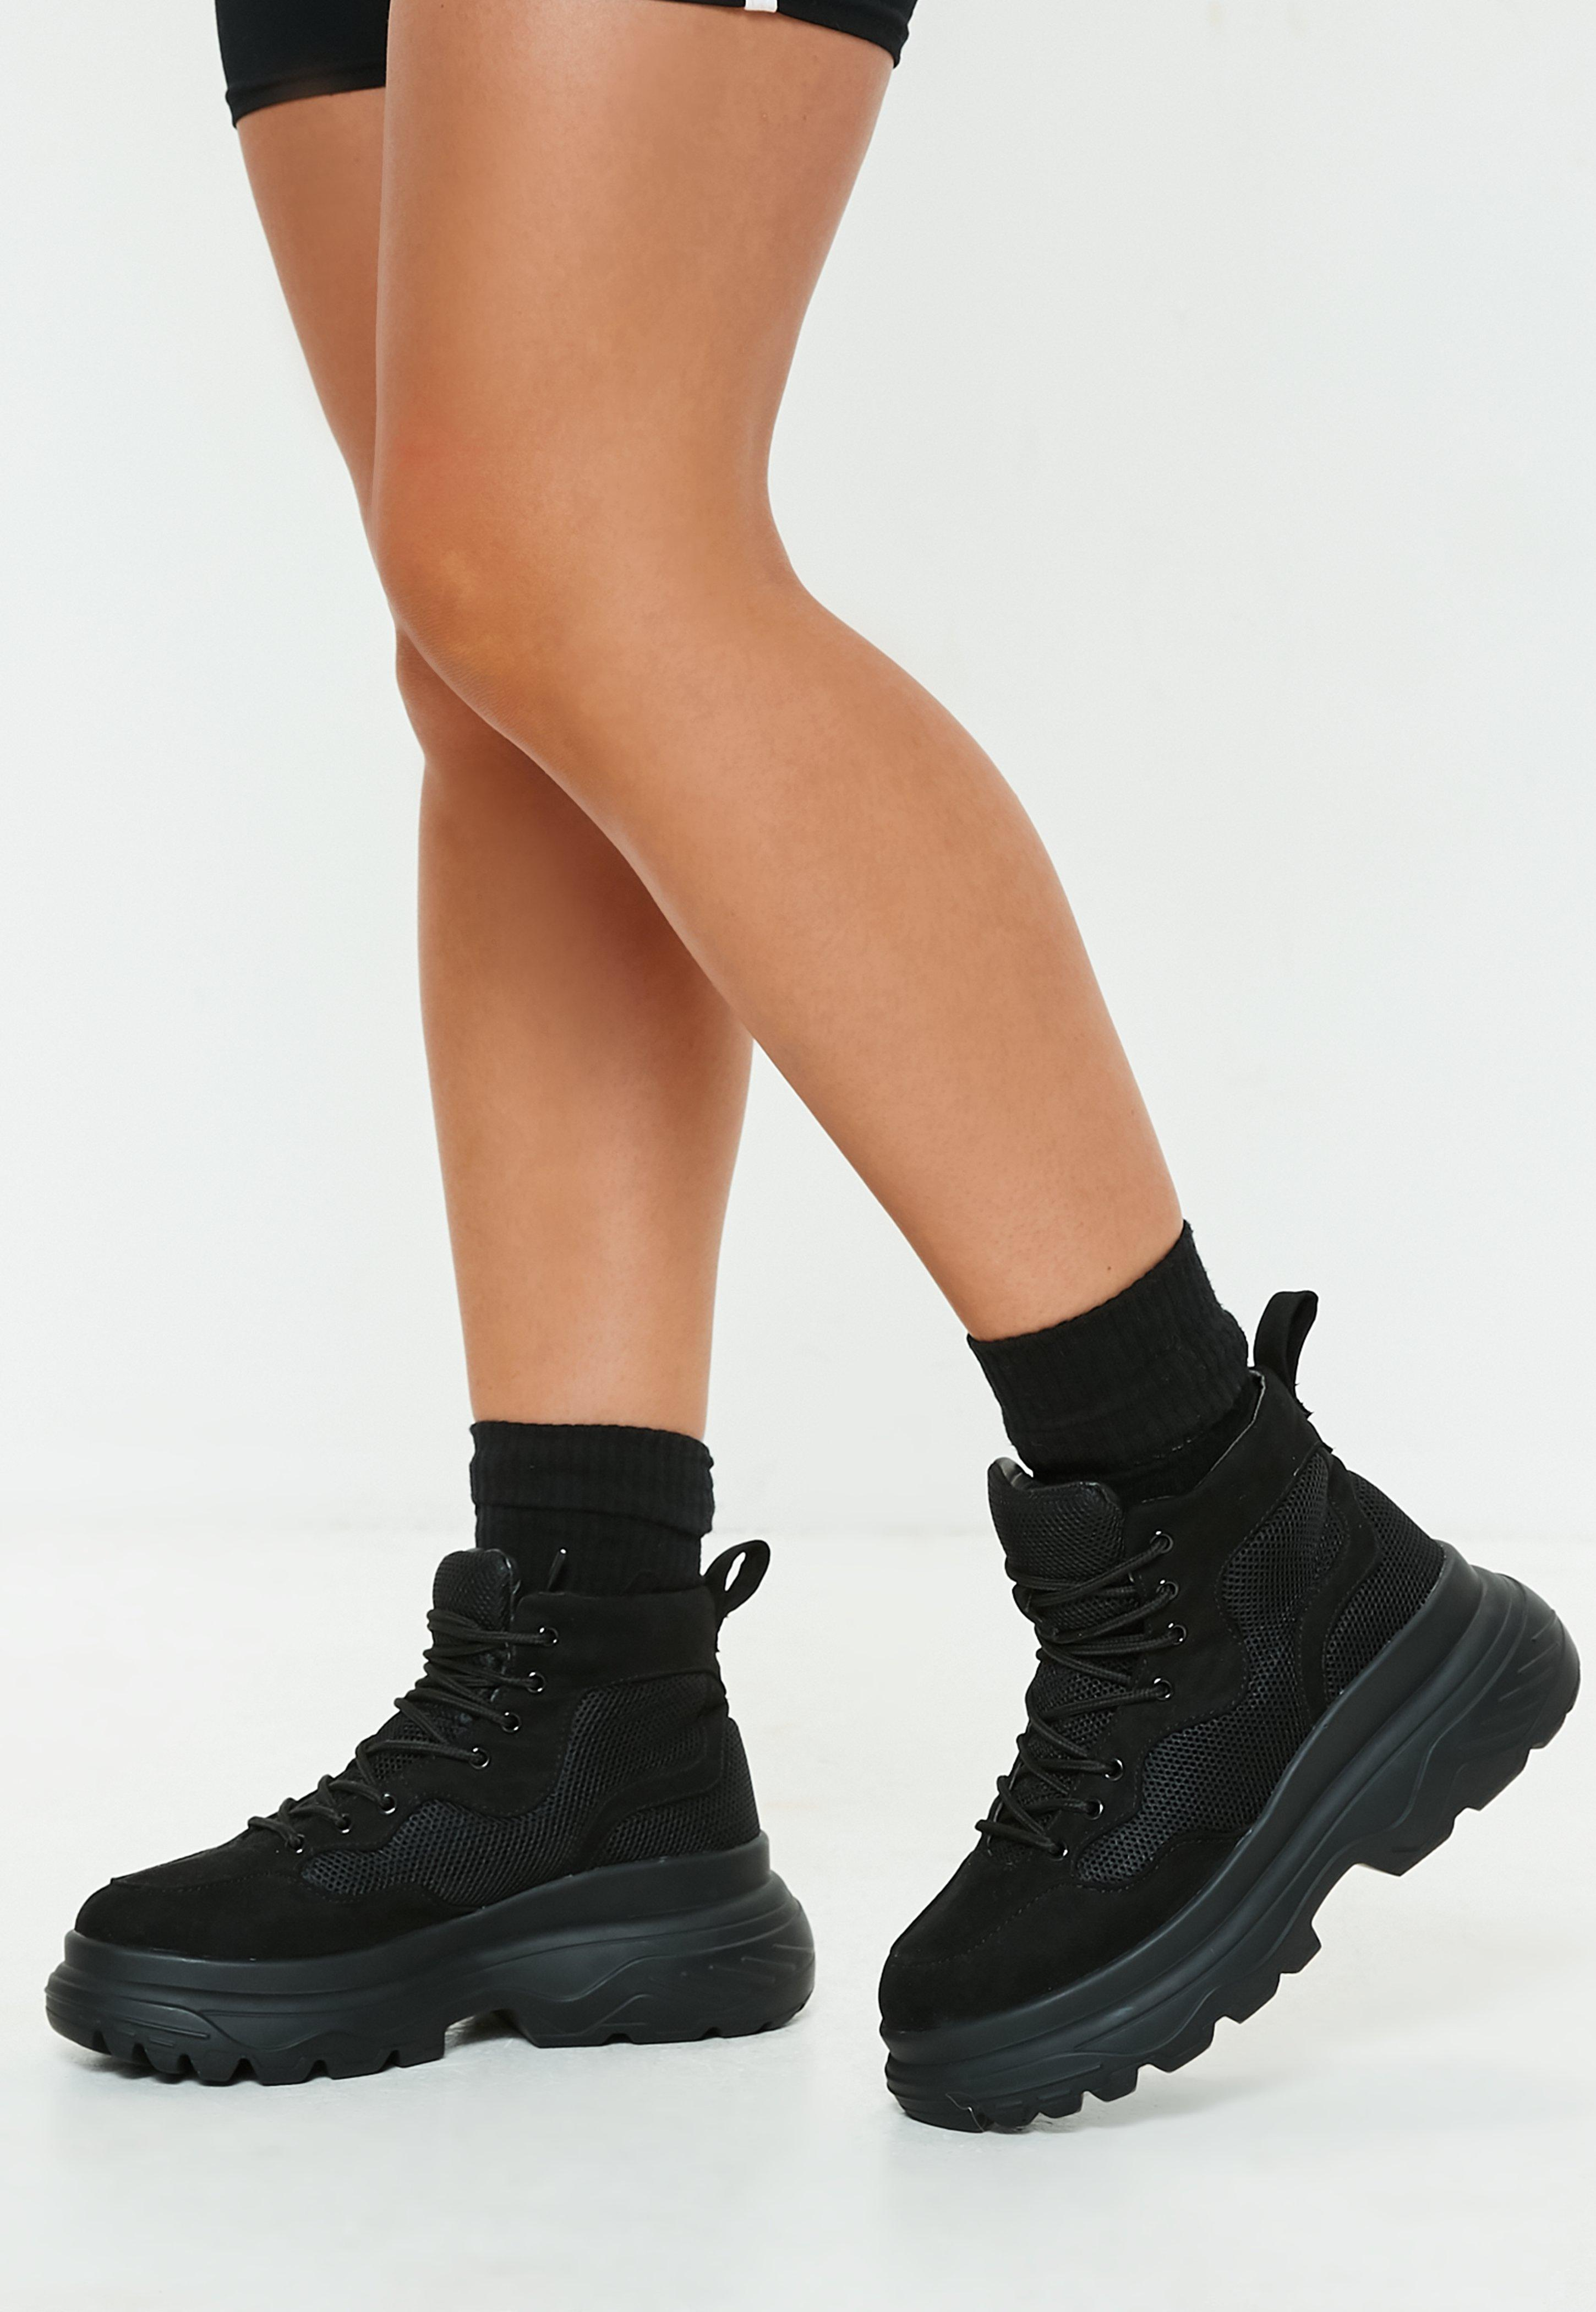 823ad53e2bb Black Double Sole Hiking Sneaker Boots